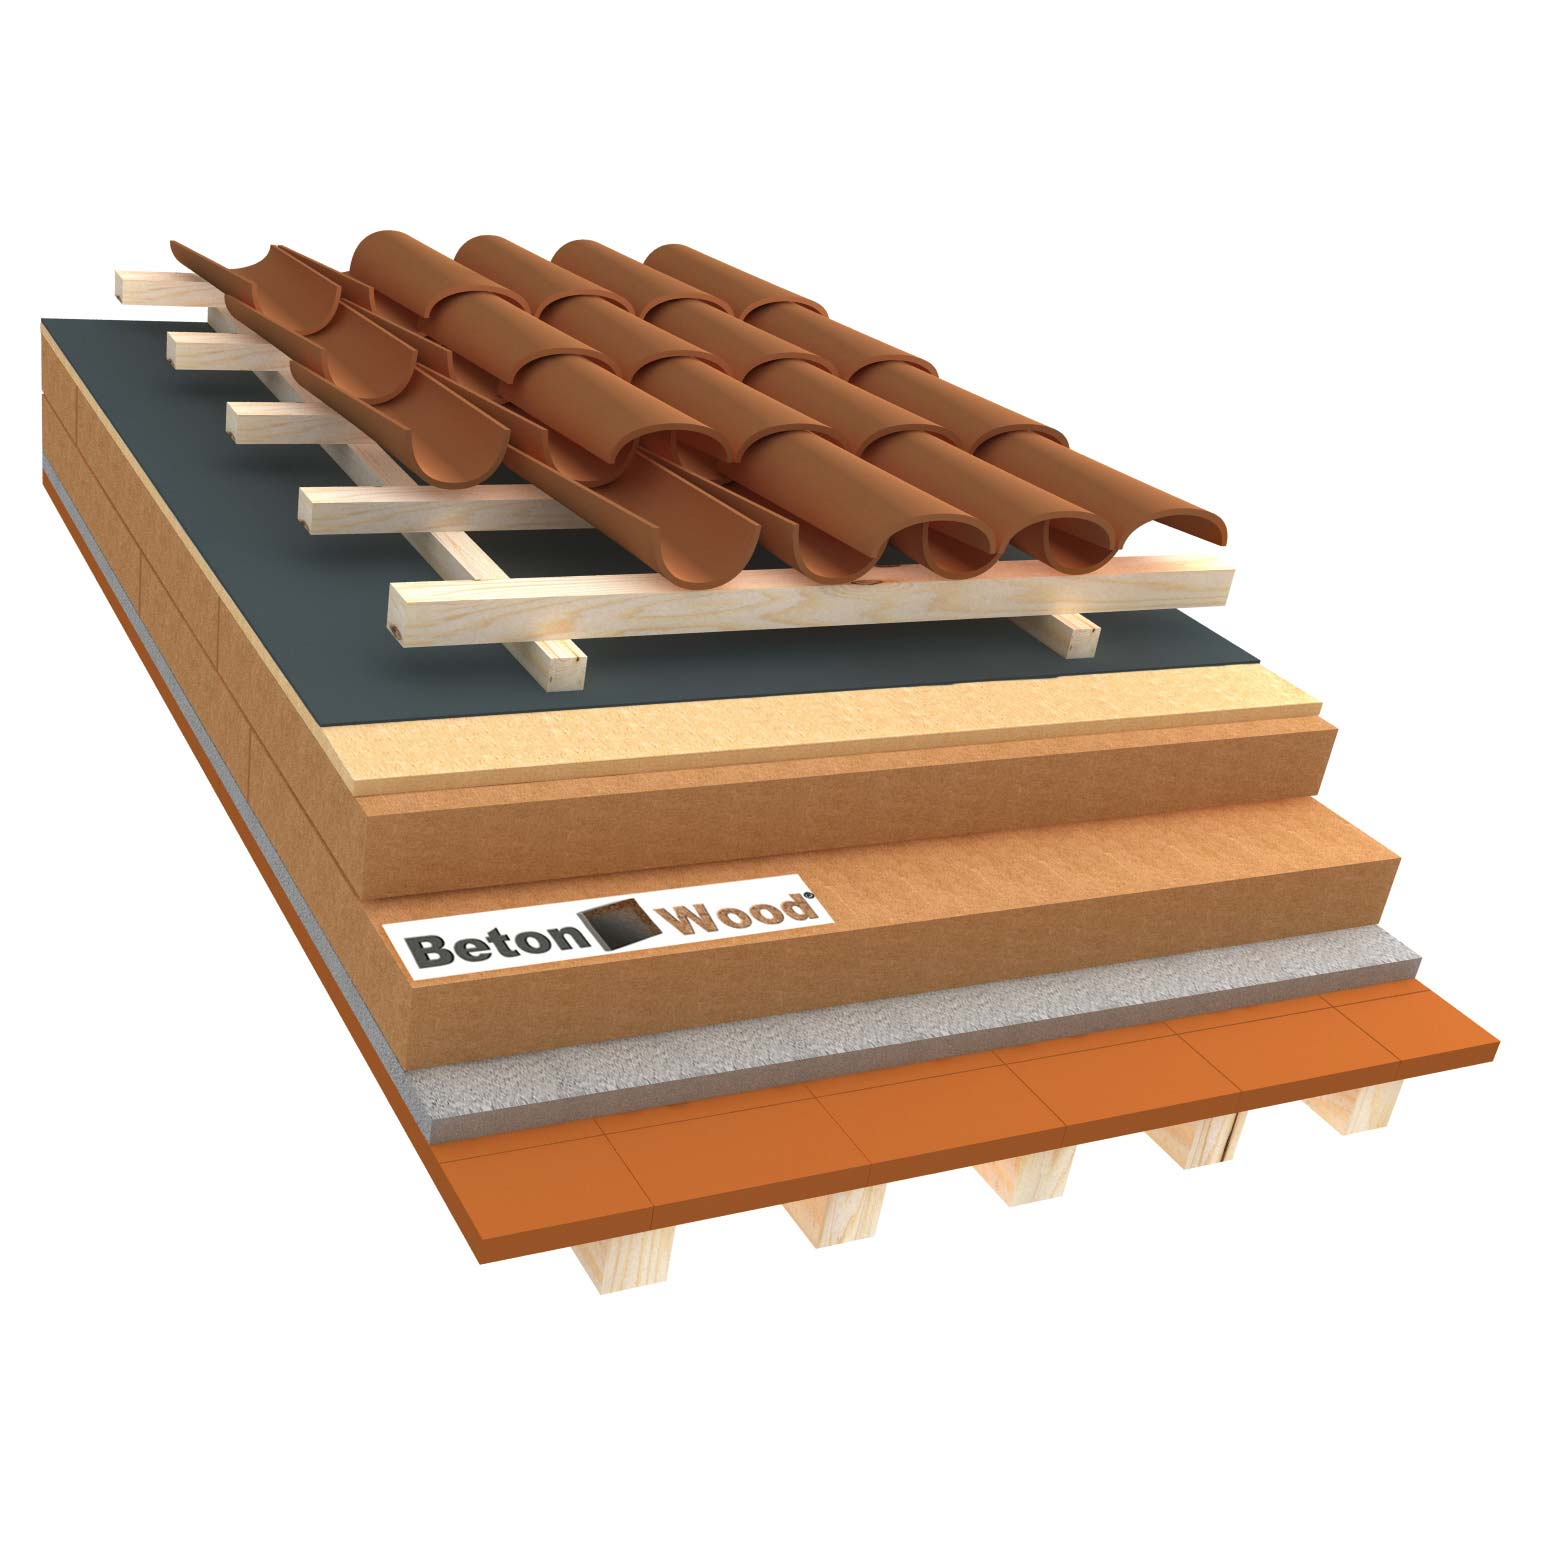 Ventilated roof with wood fiber Isorel and Special on terracotta tiles